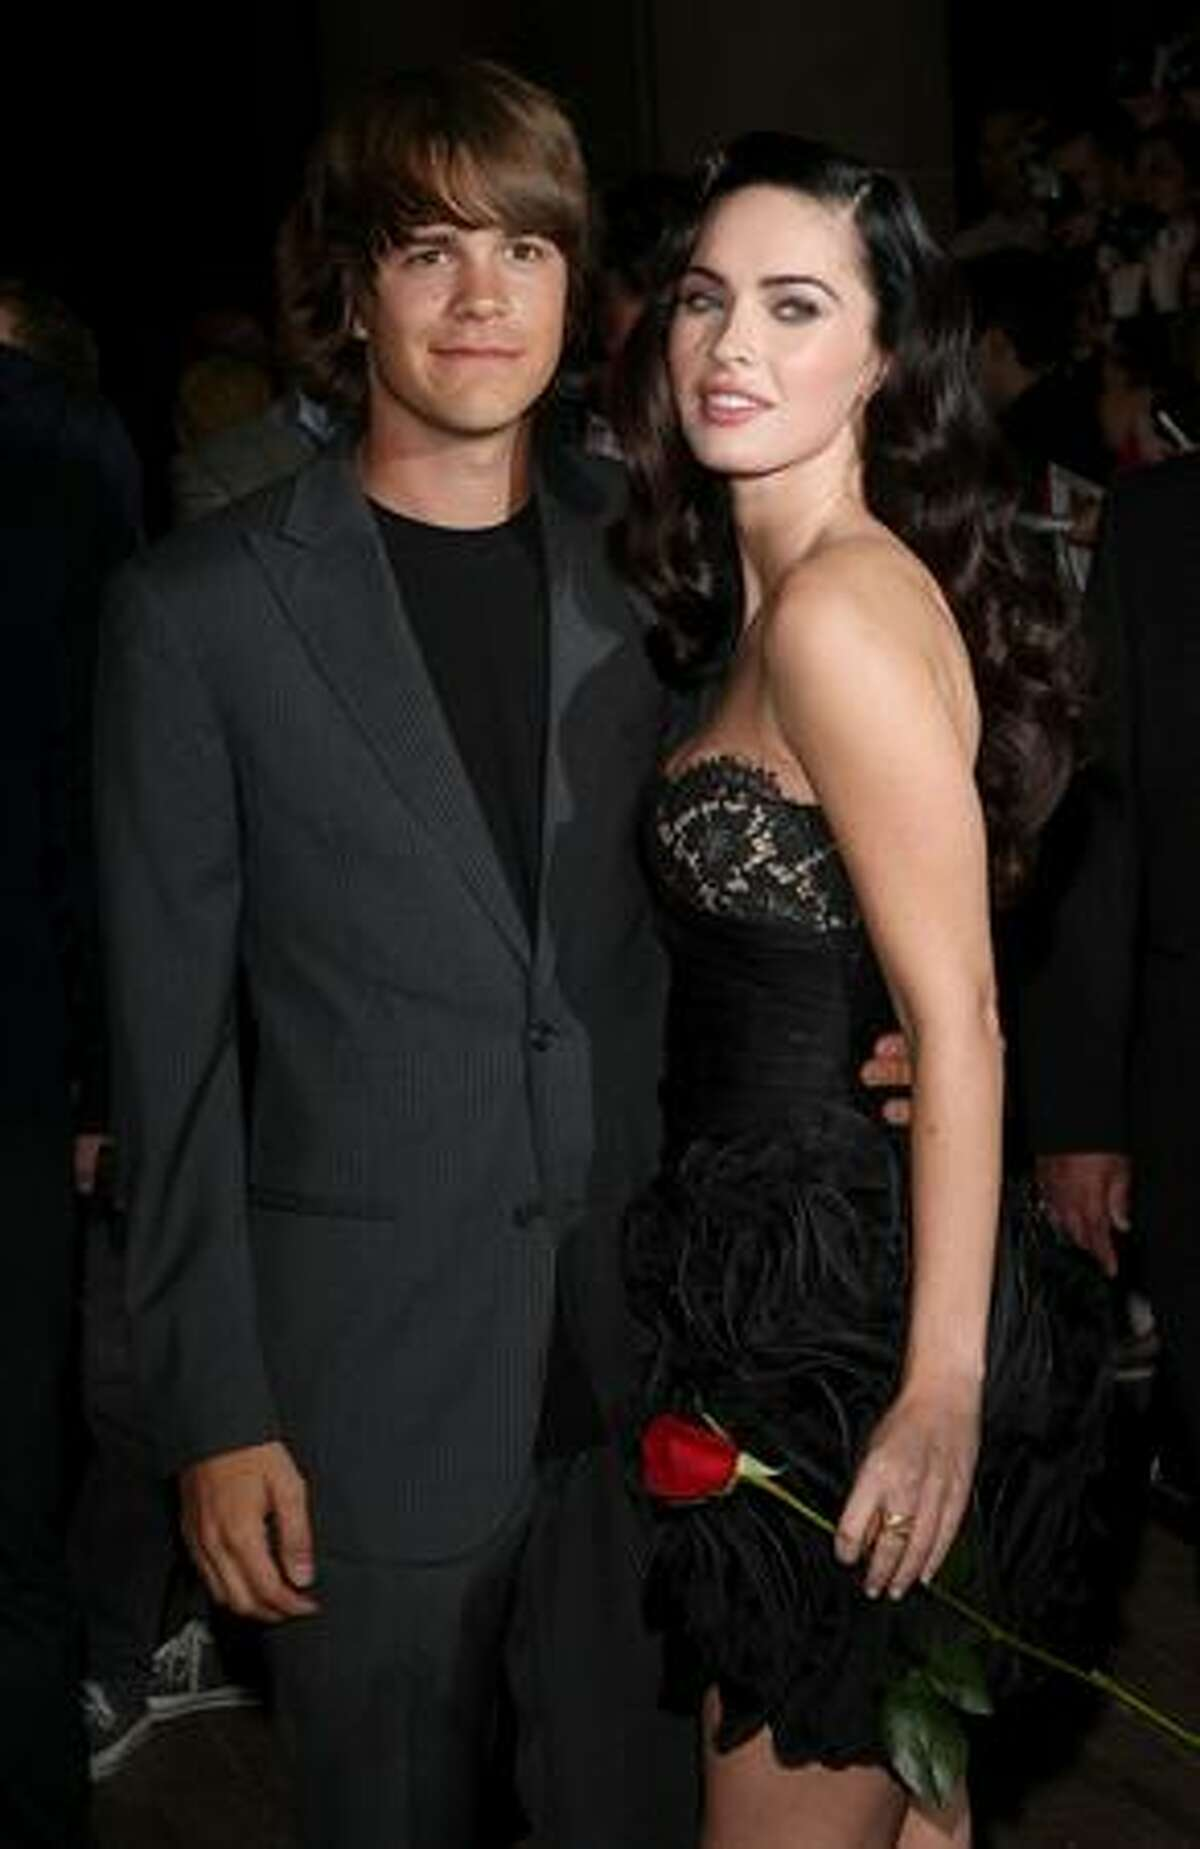 """Actor Johnny Simmons (L) and actress Megan Fox arrive at the Toronto International Film Festival Midnight Madness screening """"Jennifer's Body"""" held at the Ryerson Theatre on September 10, 2009 in Toronto, Canada."""